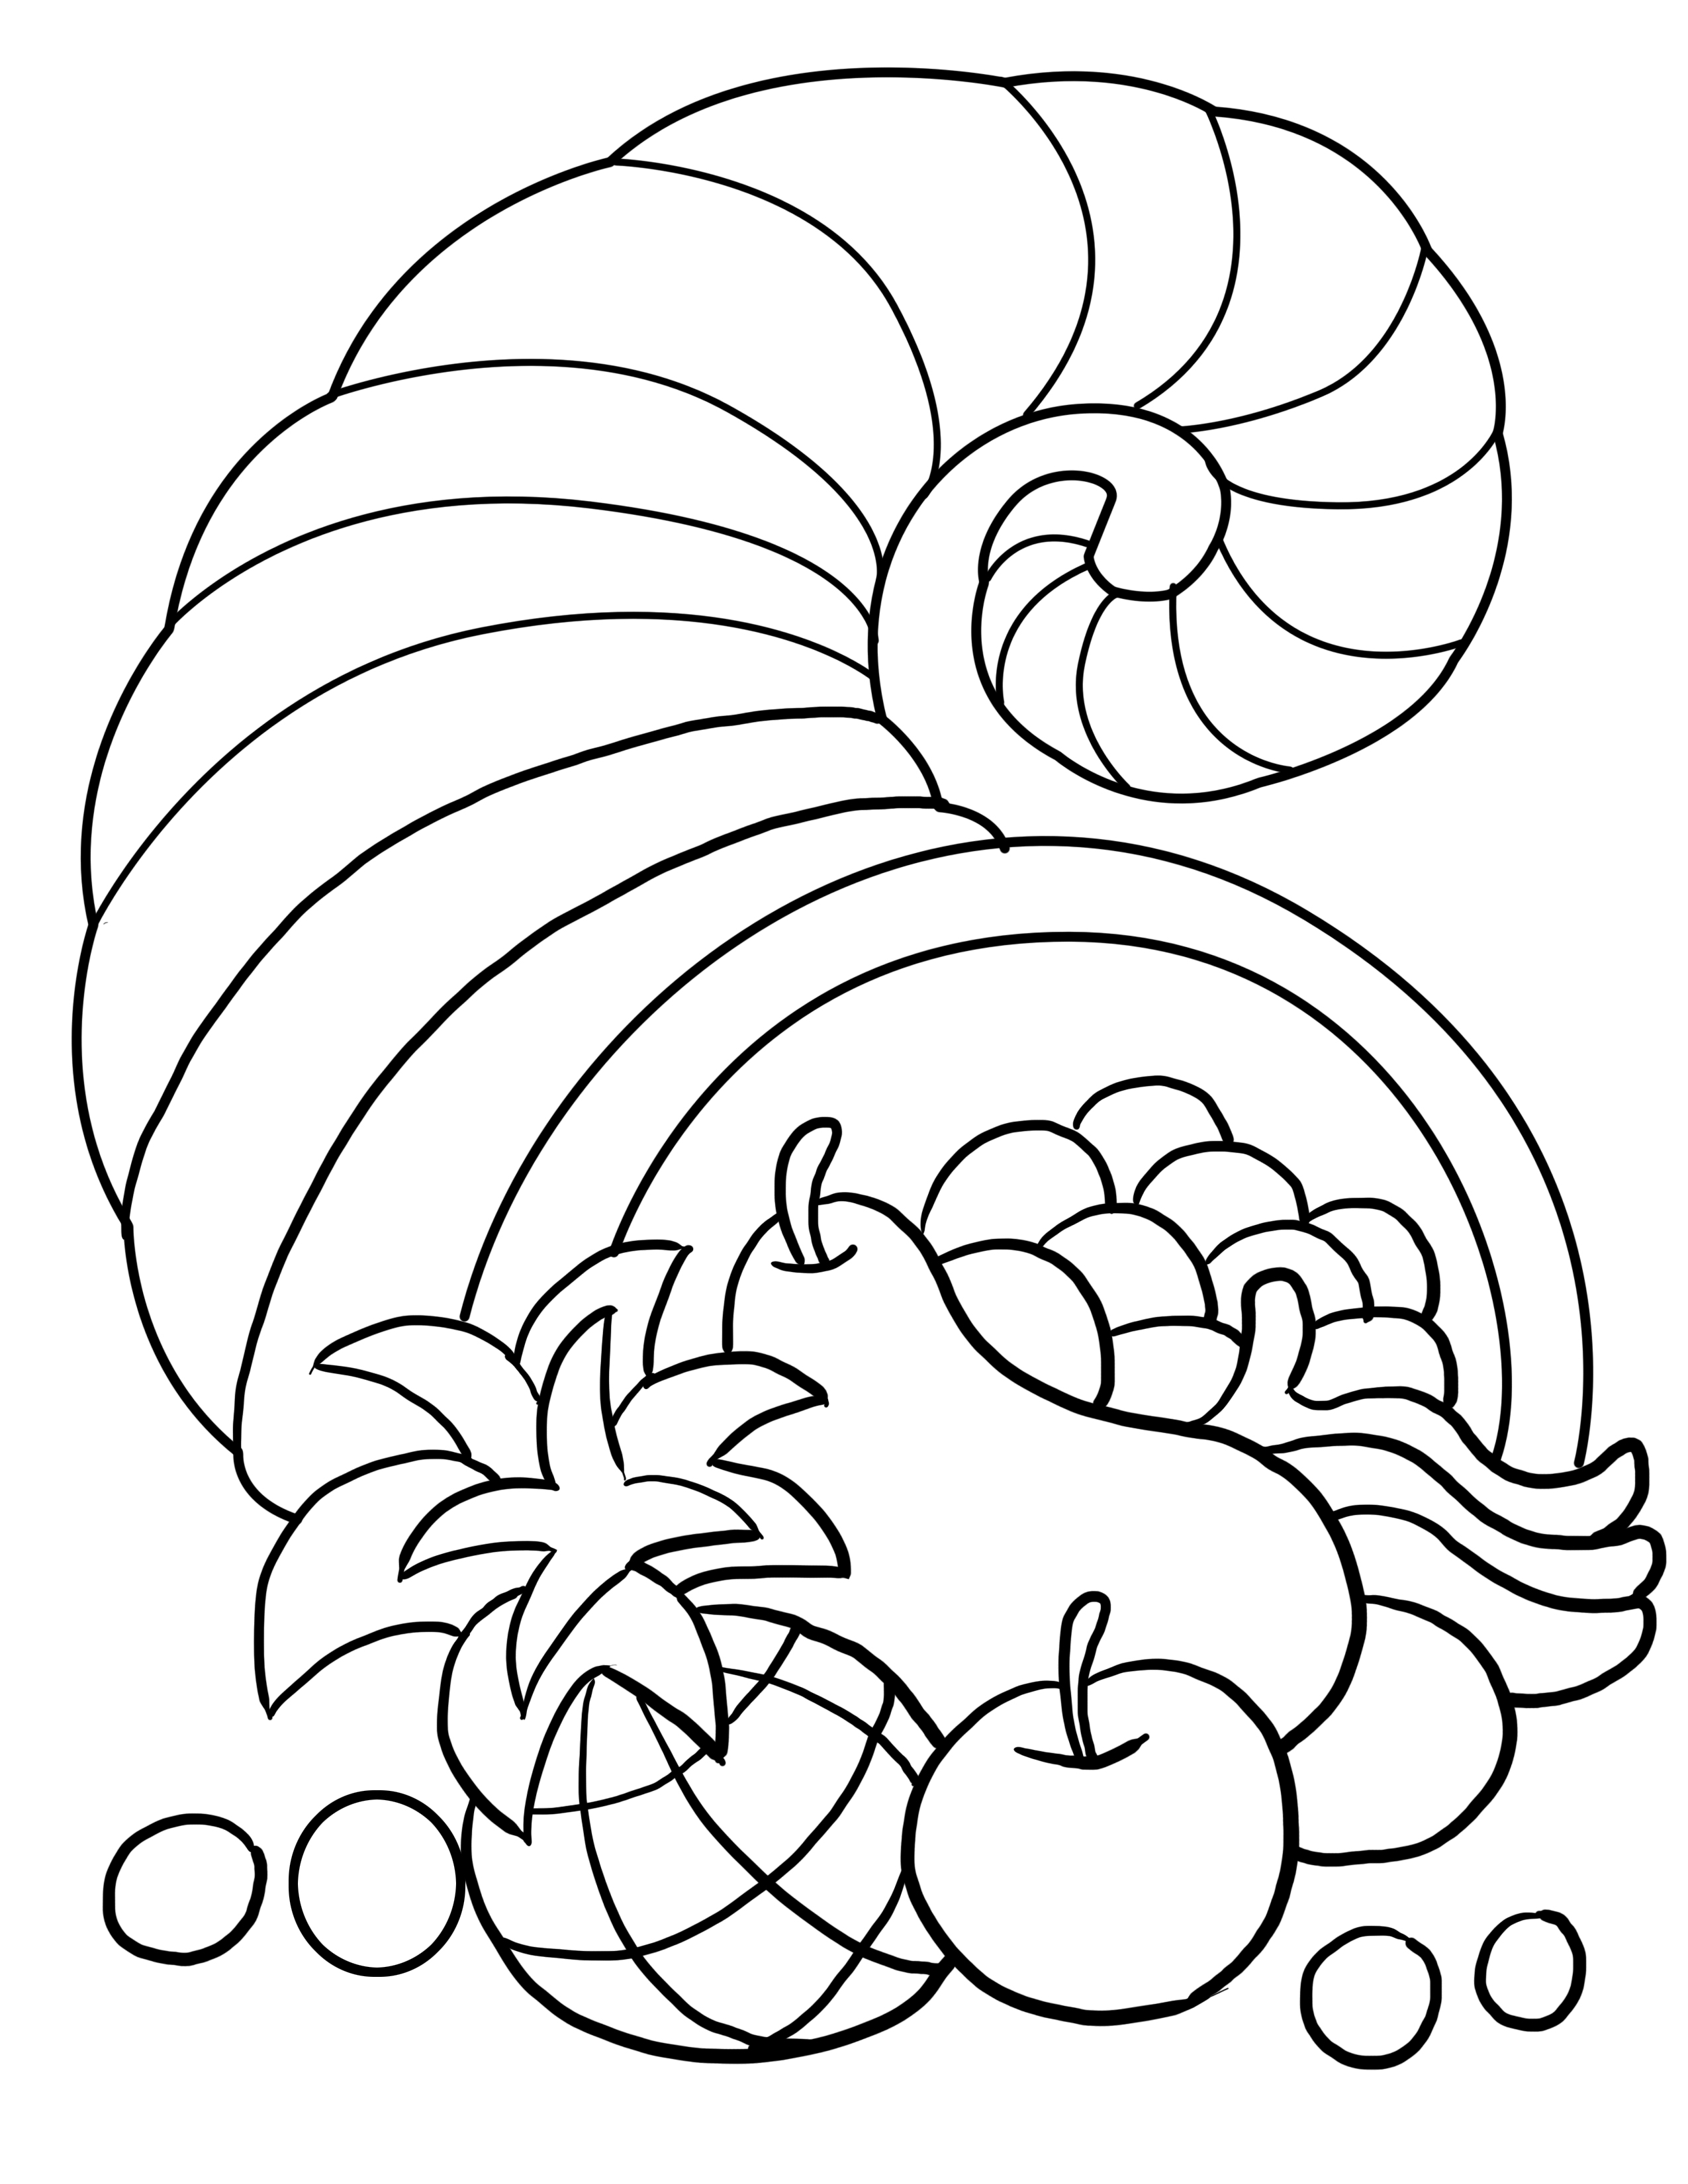 Thanksgiving Drawing at GetDrawings.com | Free for ...